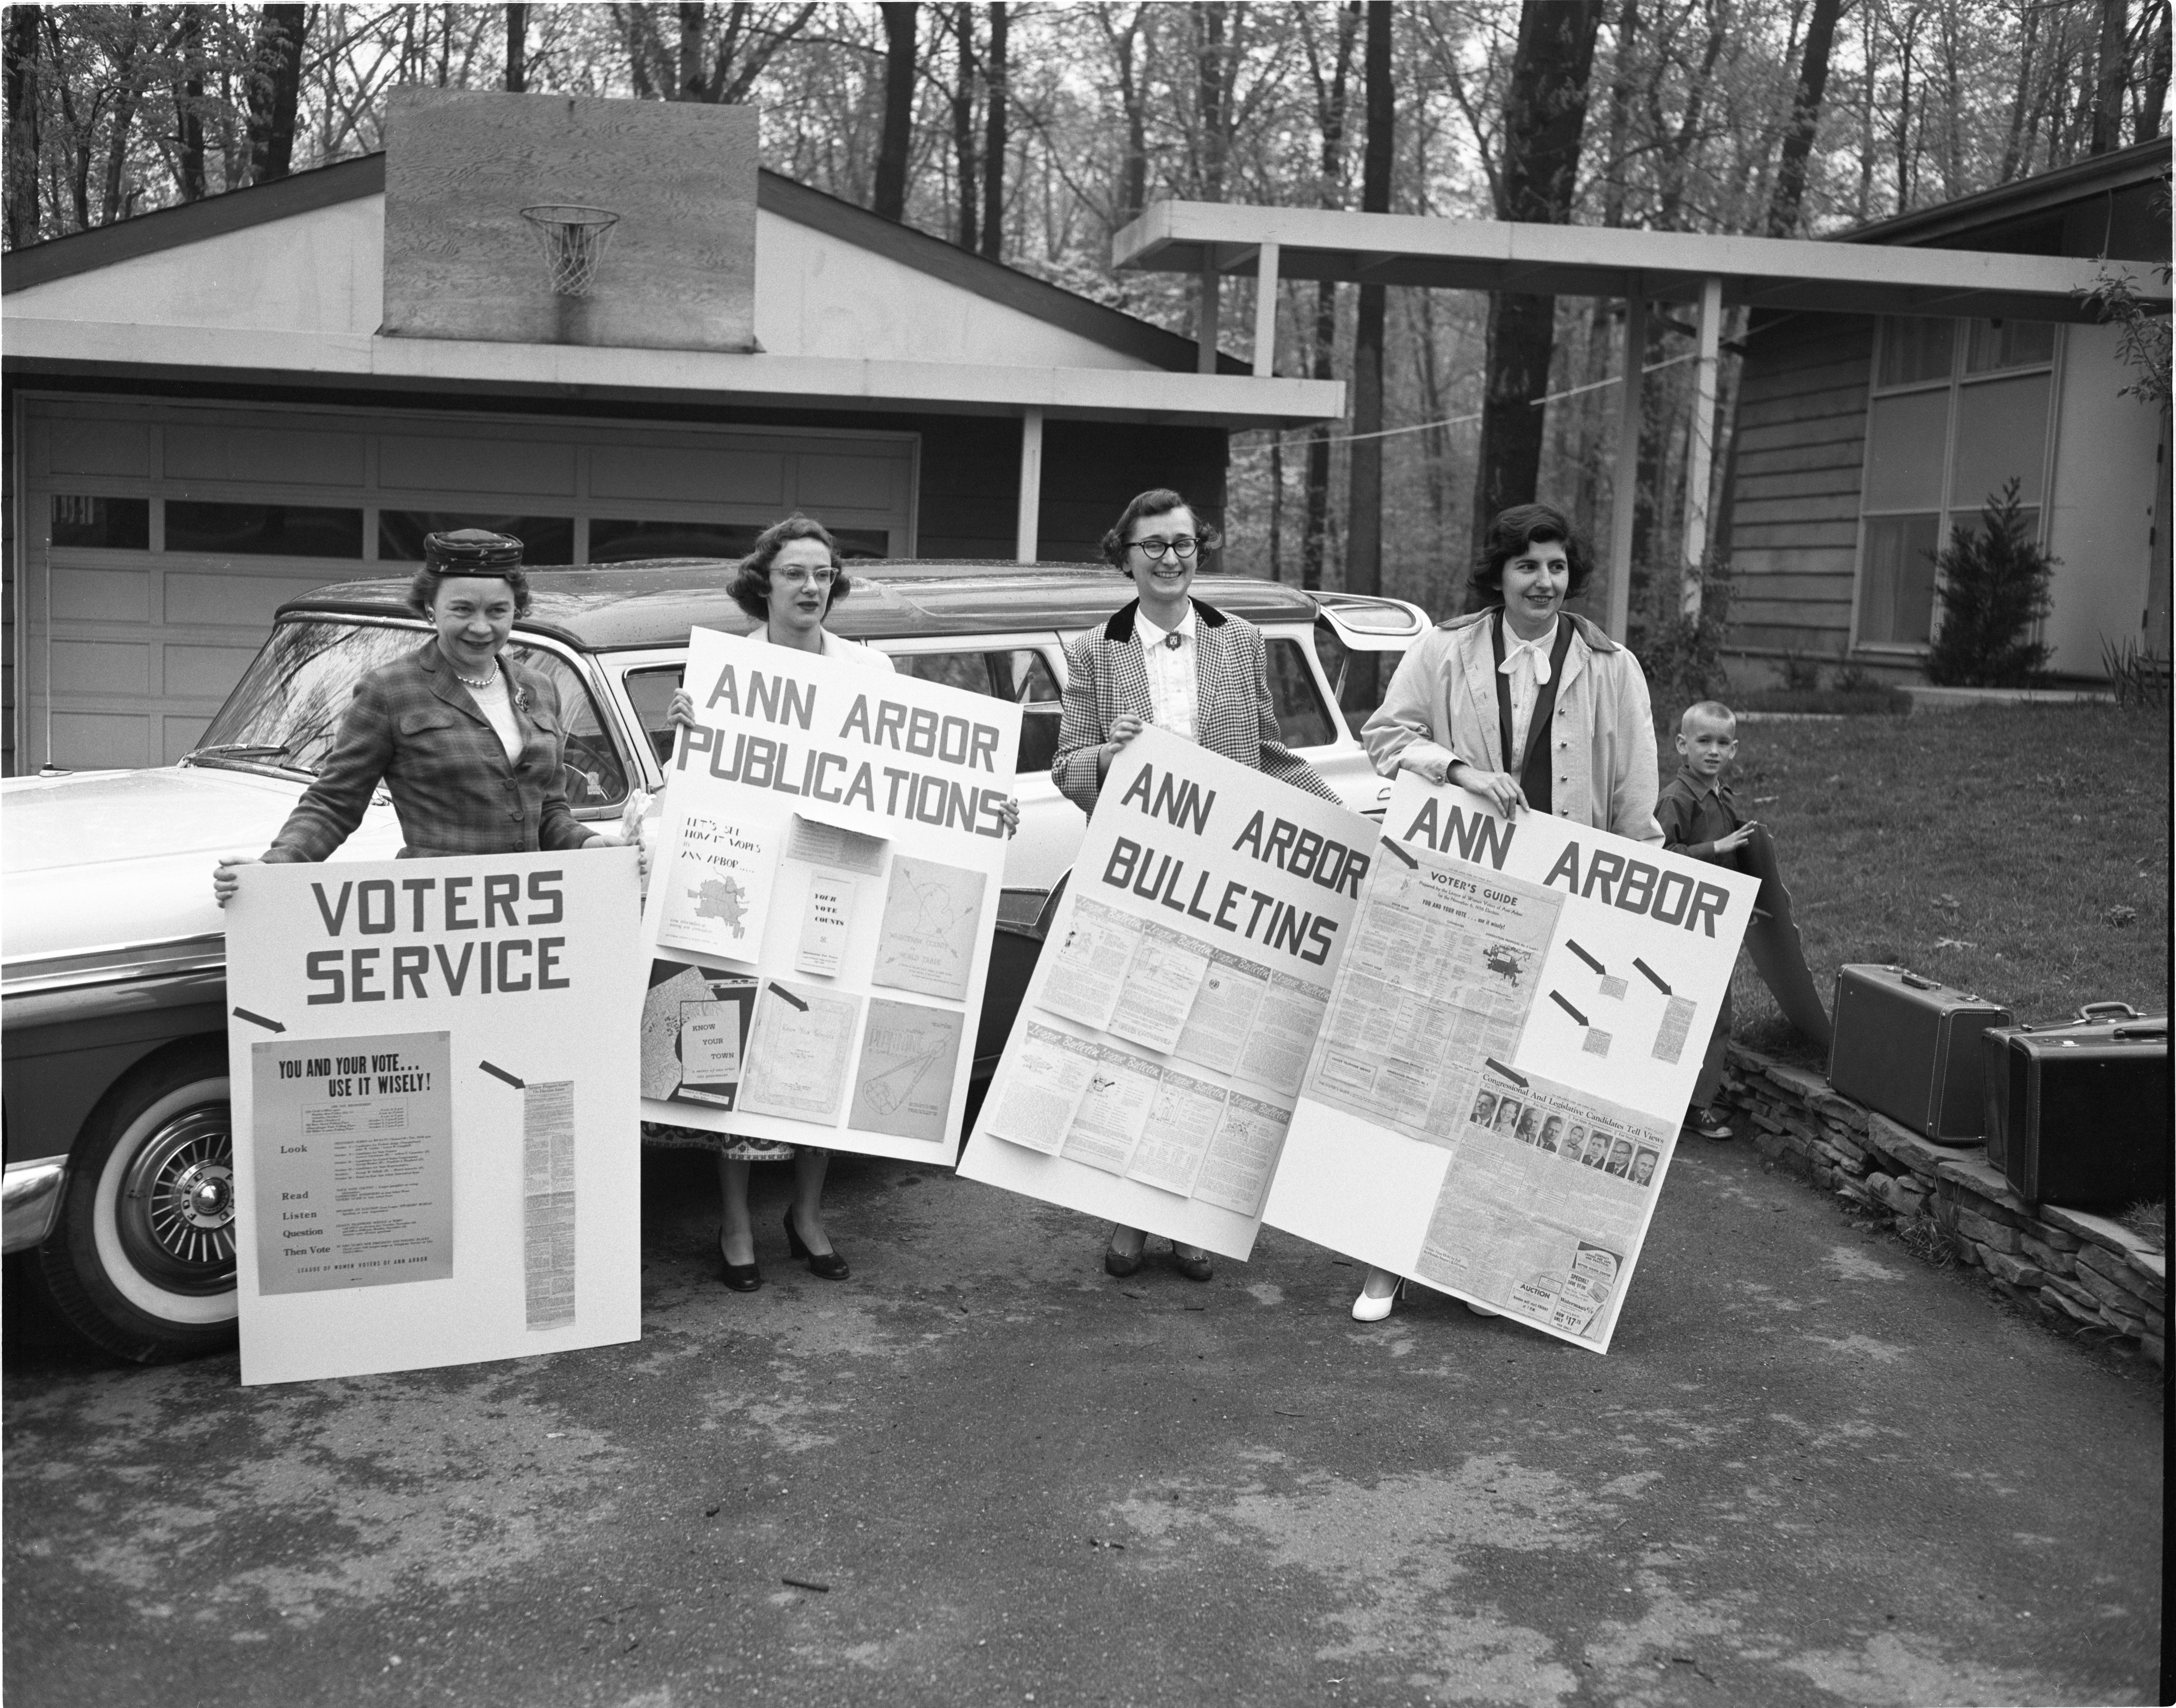 Ann Arbor League Of Women Voters Members & Their Posters For The State Convention, May 1957 image